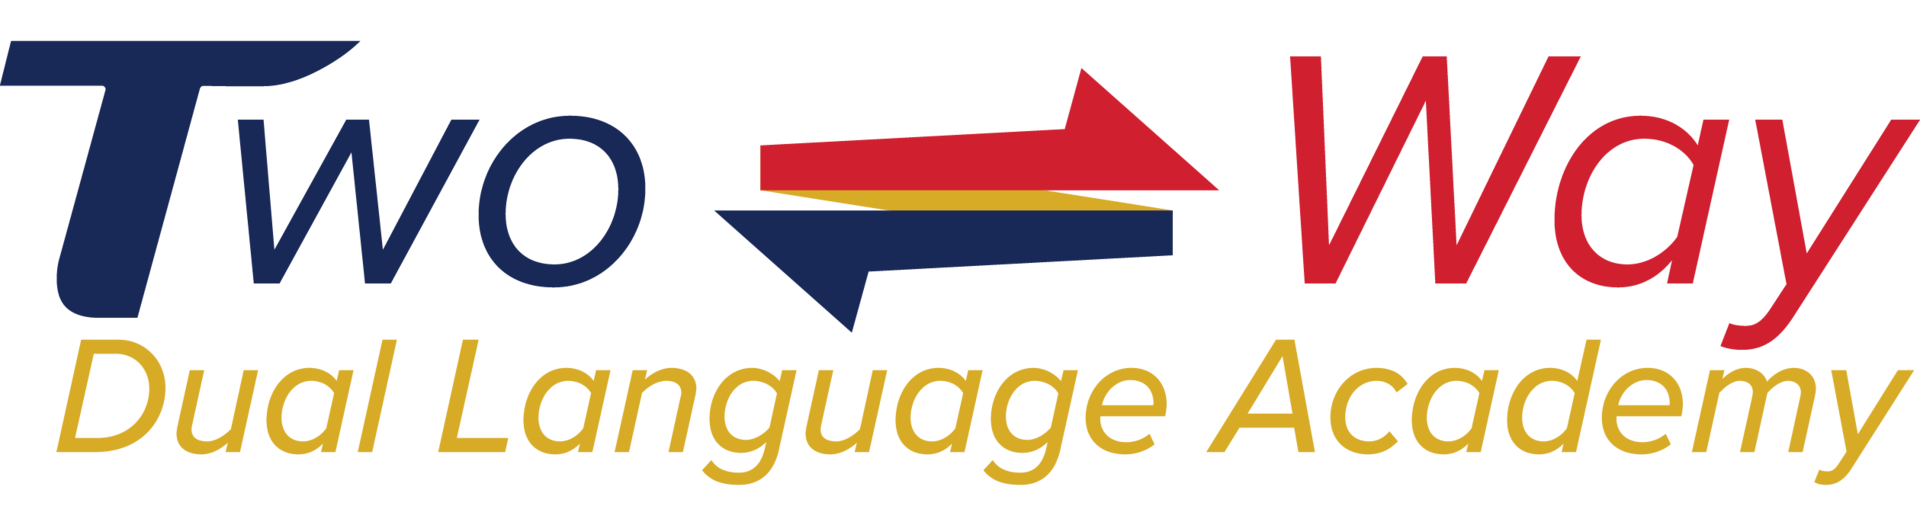 Two-way dual language academy logo